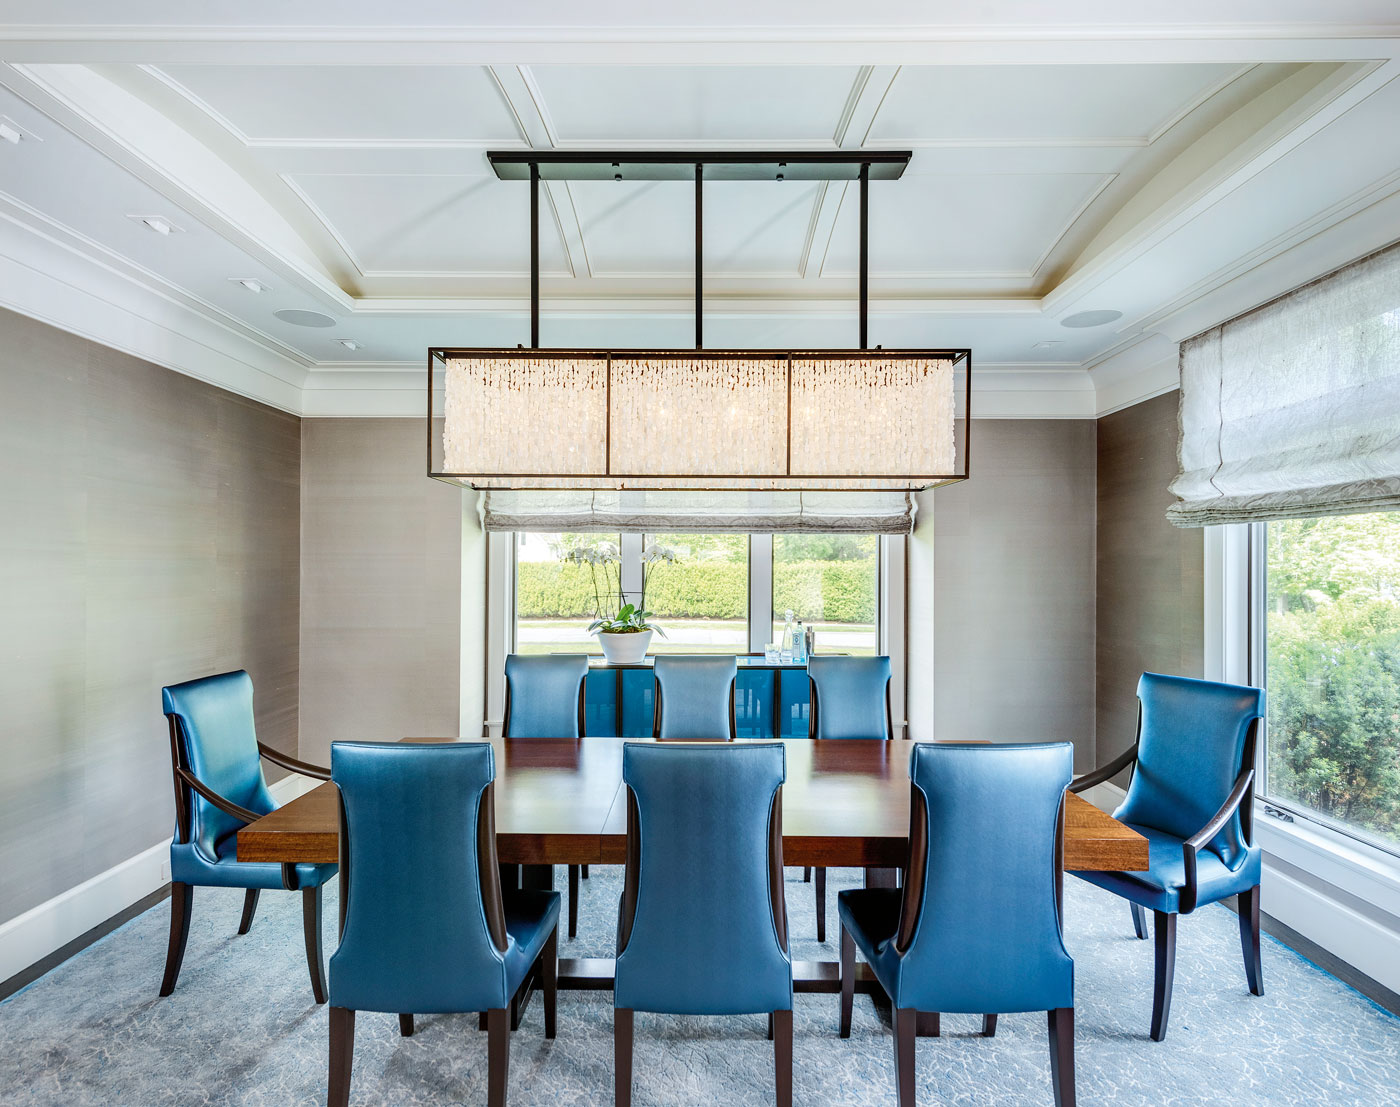 Dining room of a high-end custom home with interior design by Manuel de Santaren.